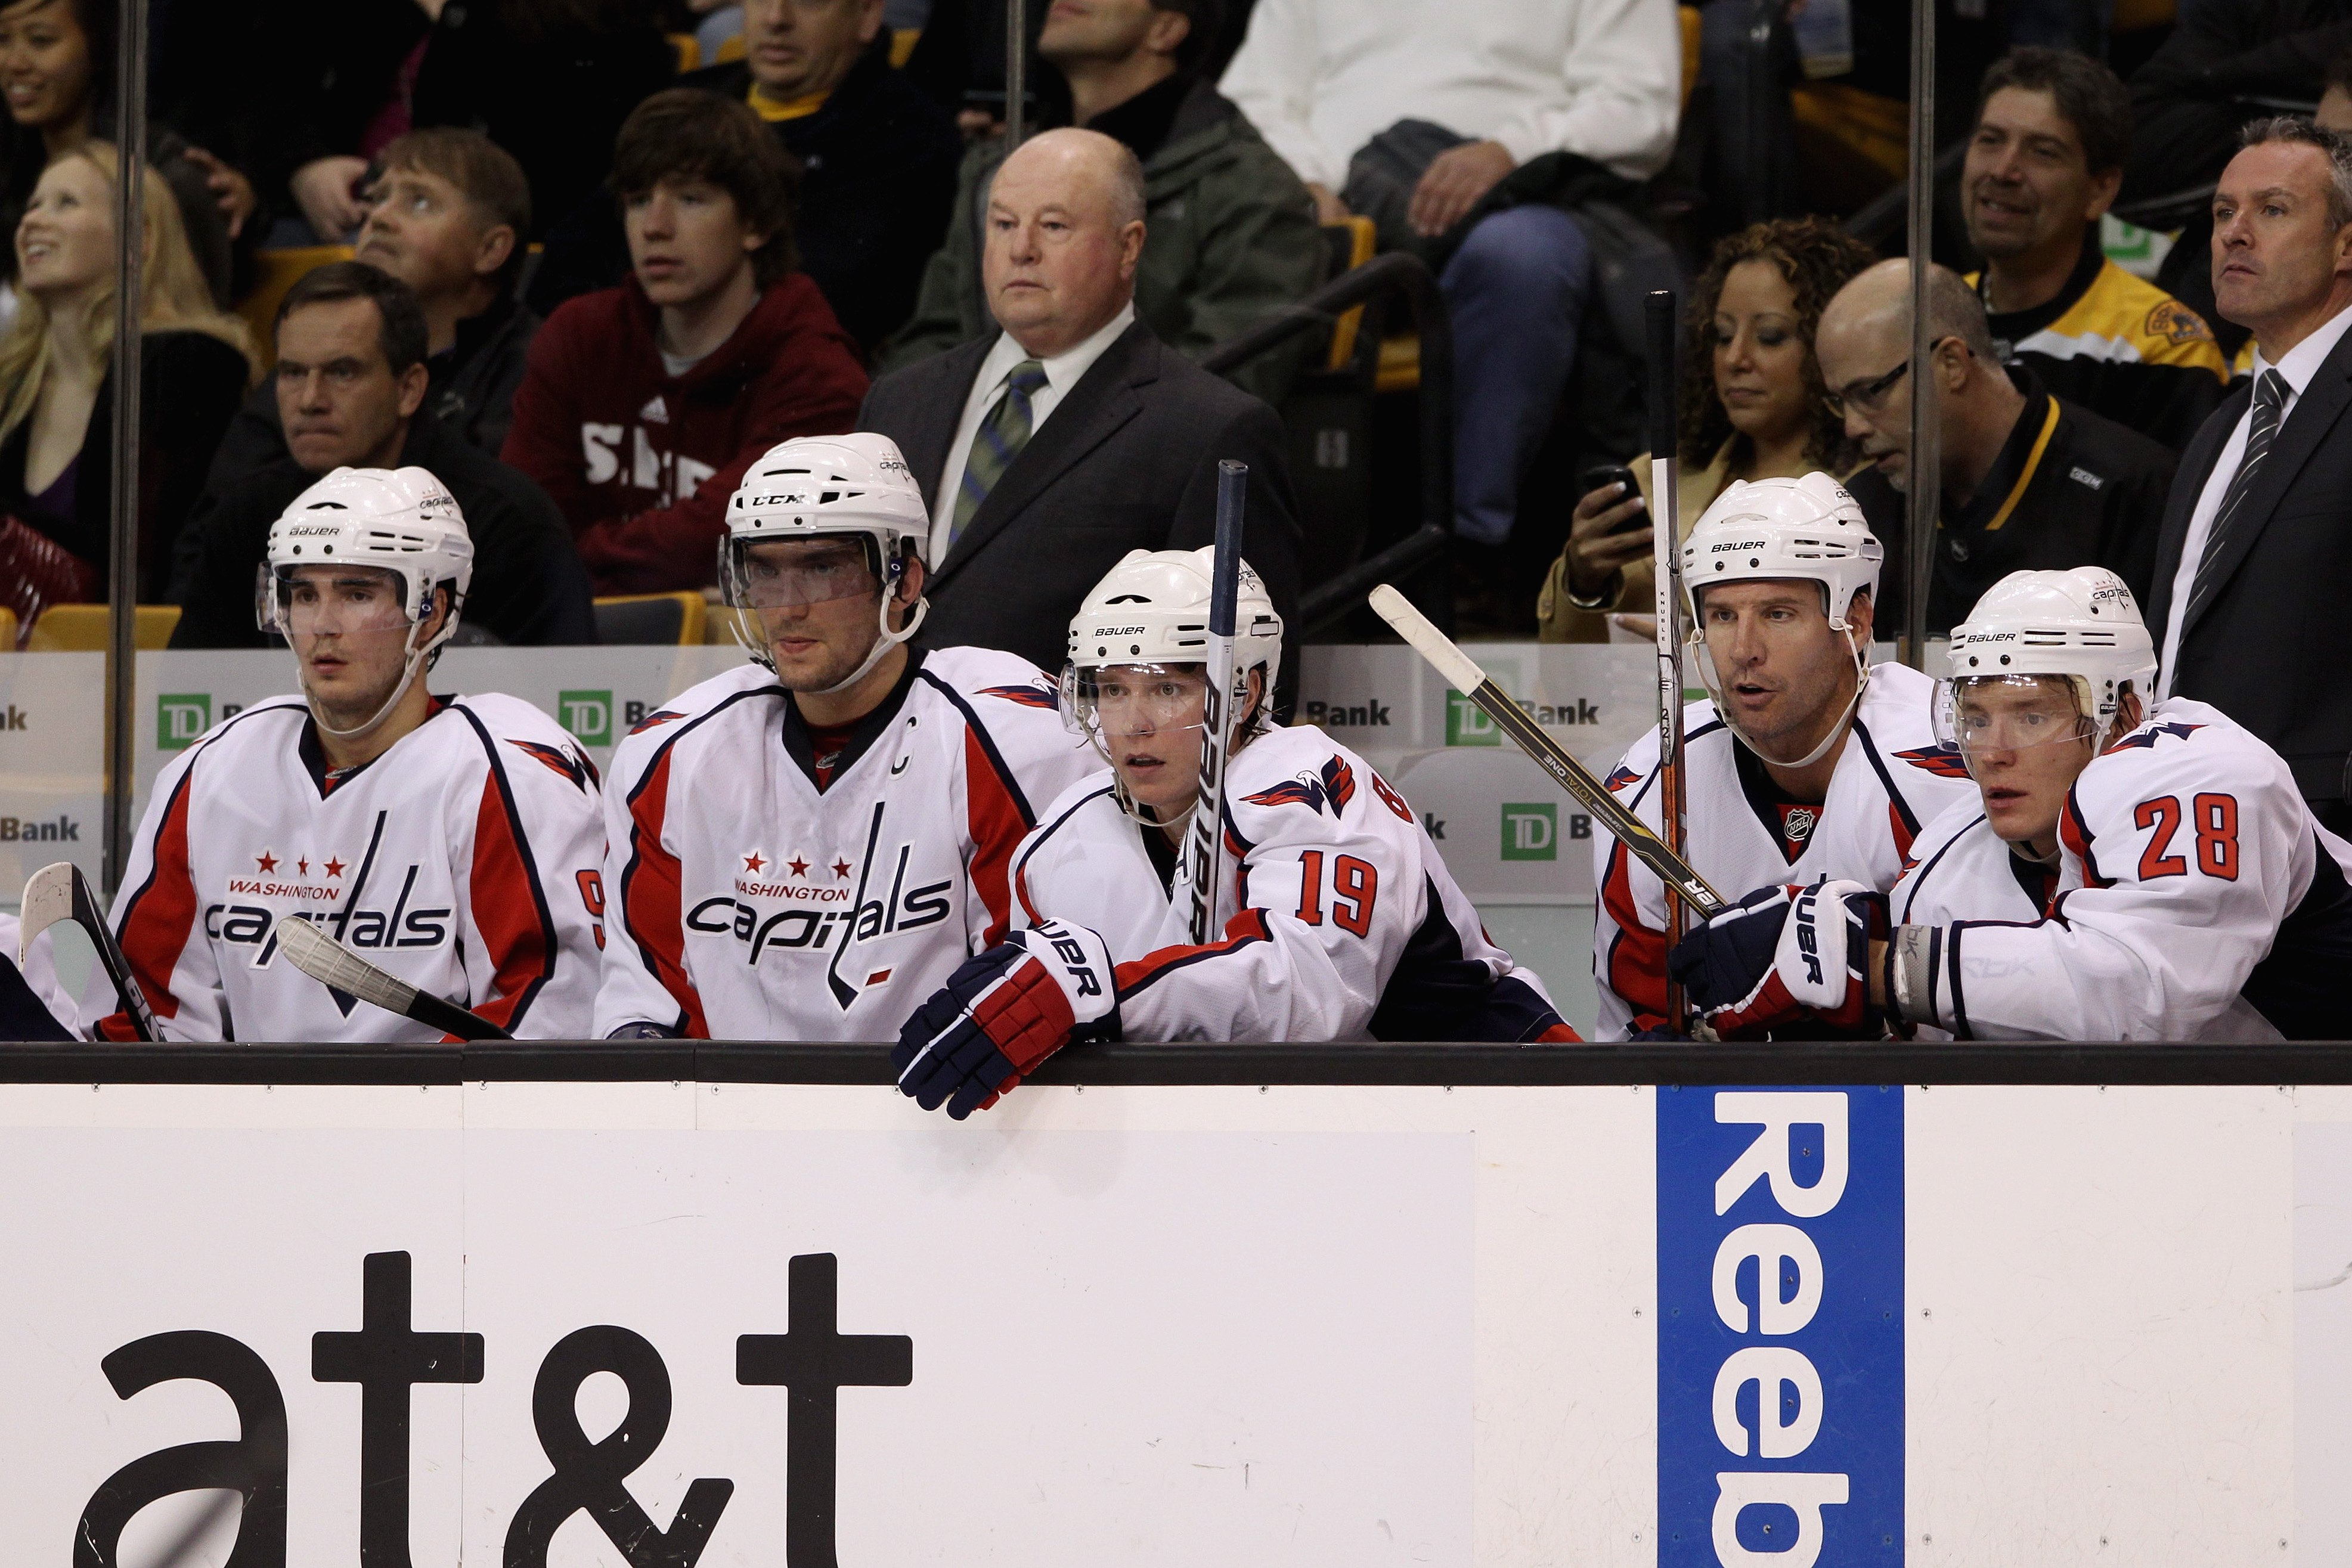 BOSTON - OCTOBER 21:  Head coach Bruce Boudreau of the Washington Capitals and (l-r) Marcus Johansson #90, Alex Ovechkin #8, Nicklas Backstrom #19, Mike Knuble #22, Alexander Semin #28 and assistant coach Dean Evason look on from the bench against the Bos